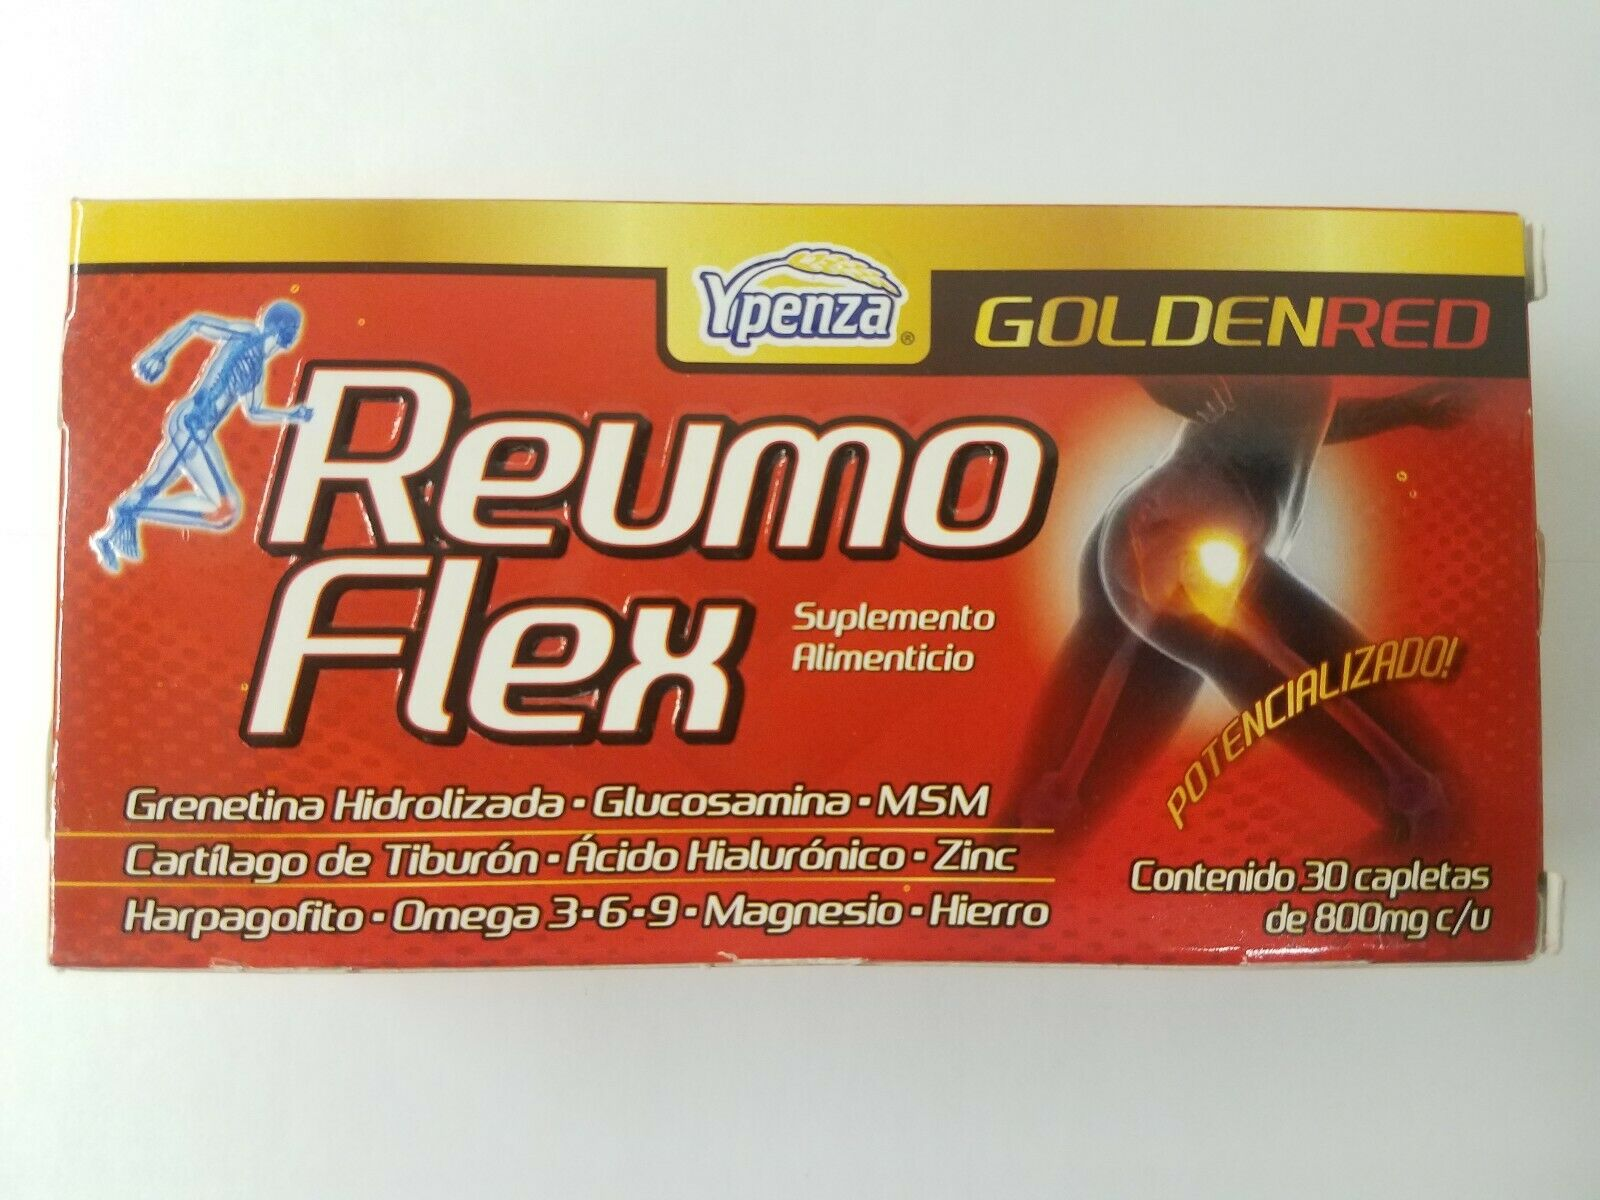 Reumo Flex GOLDEN RED Relieves Joints Artritis and Ciatica pain Articulaciones